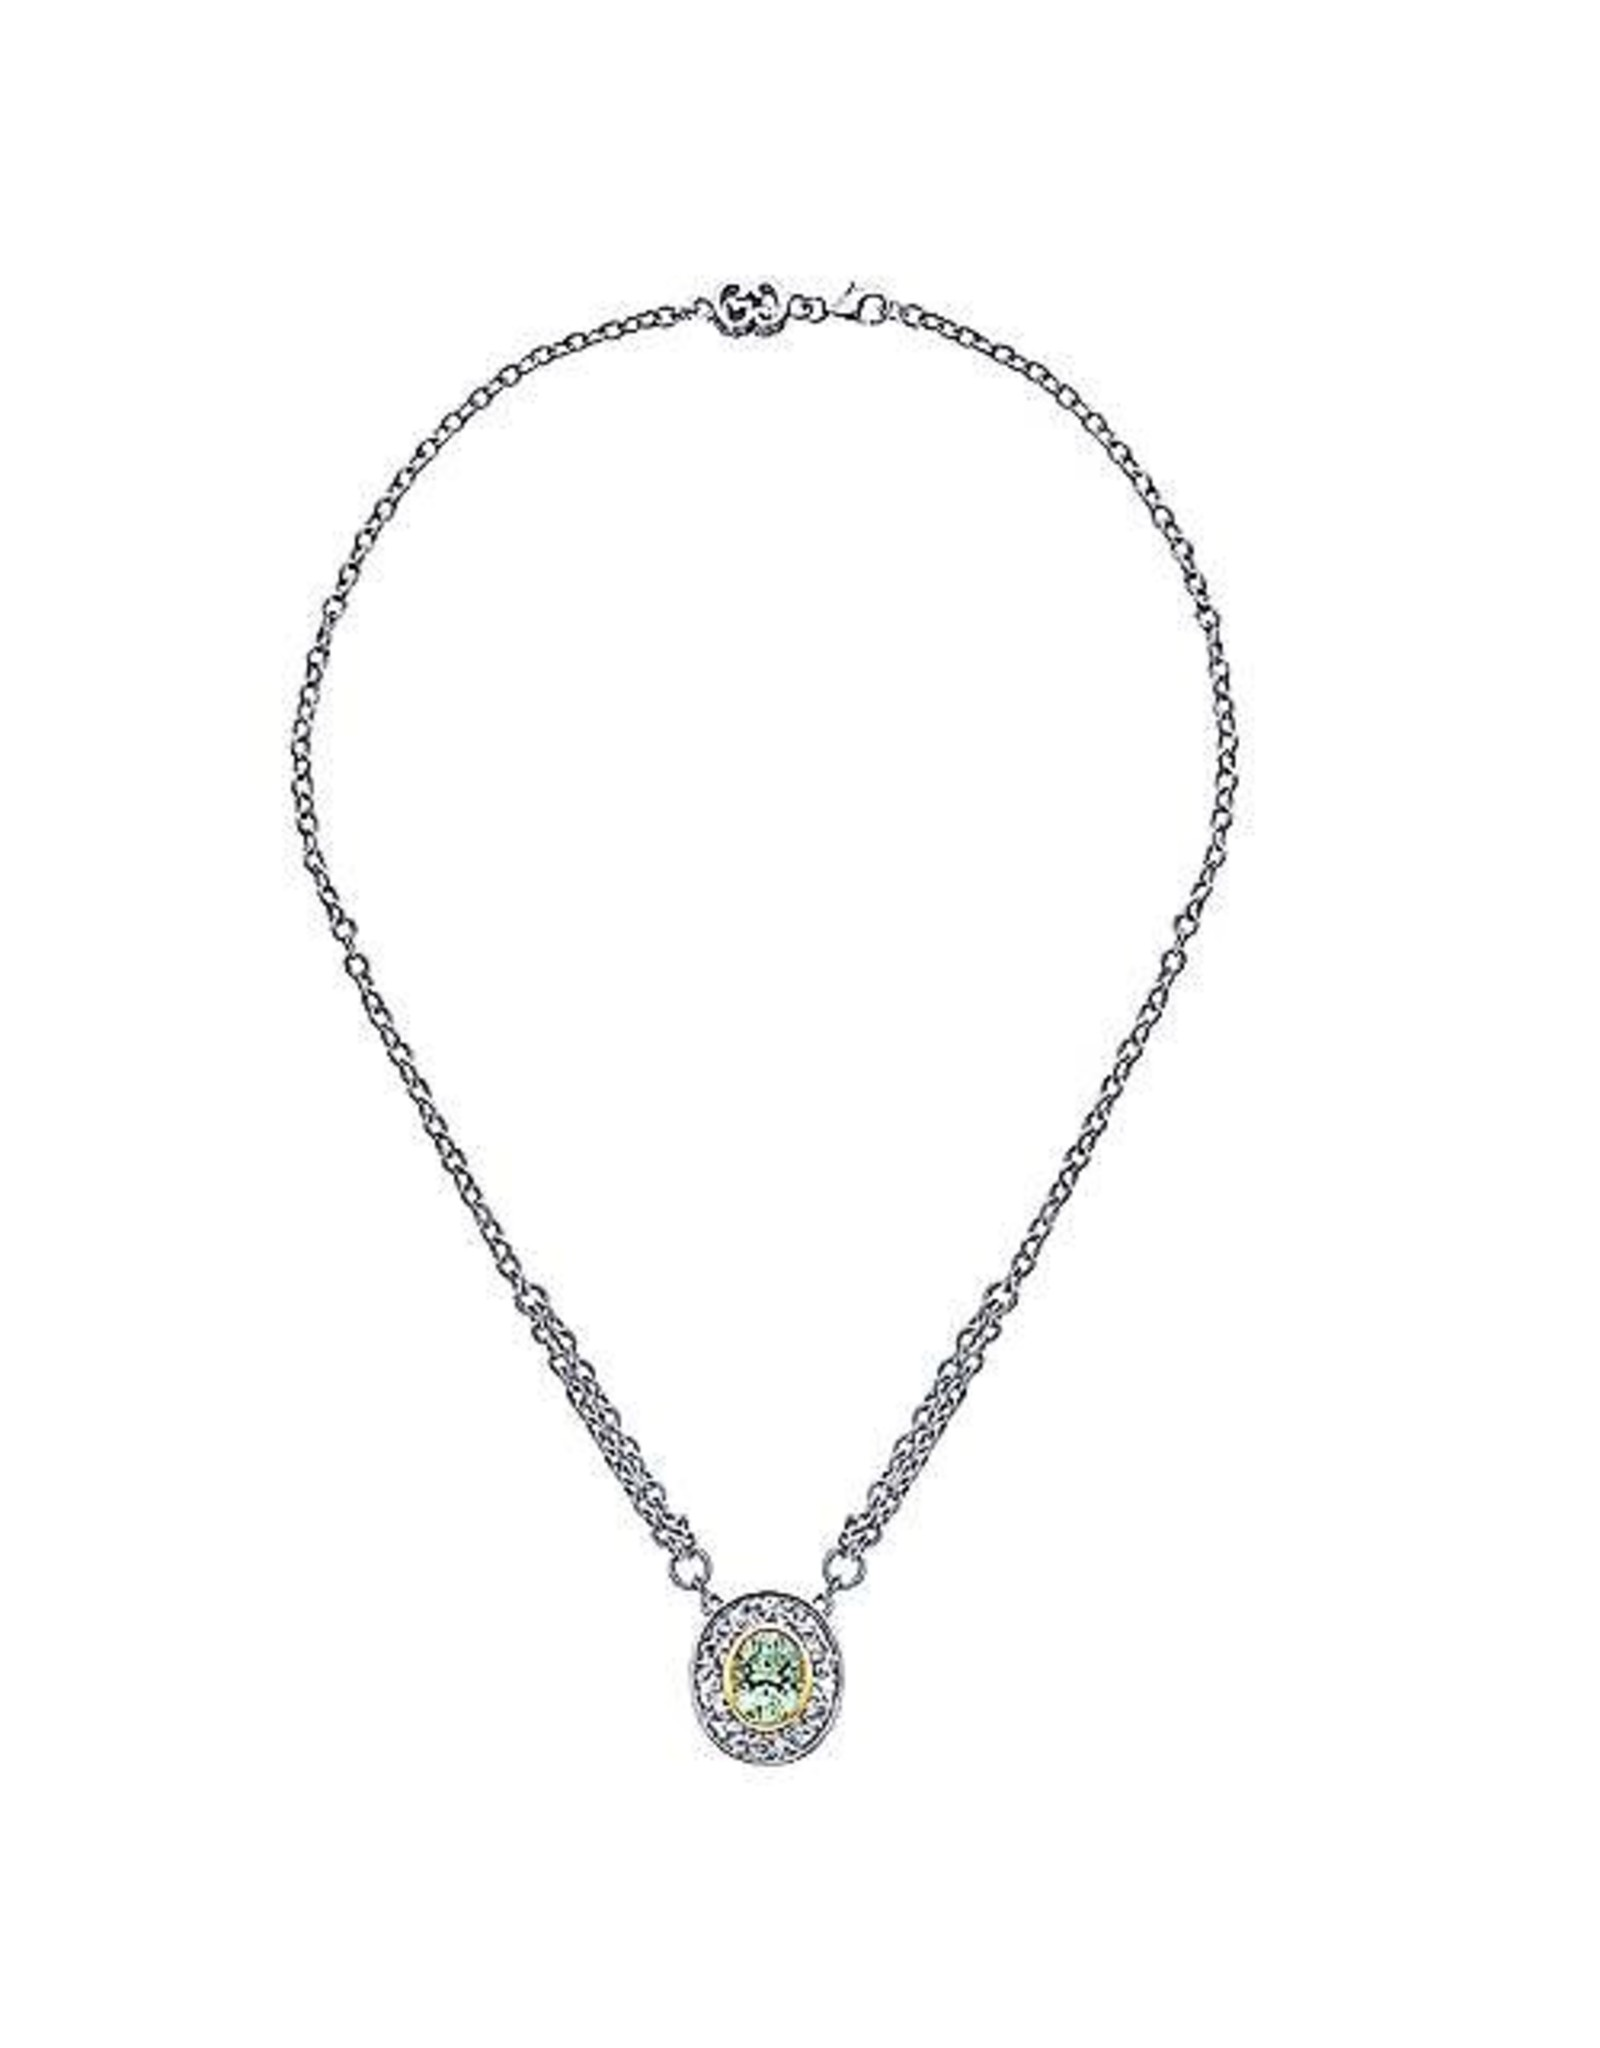 925 & 18K Yellow Gold Oval Green Amethyst Necklace, GA: 4.21ct